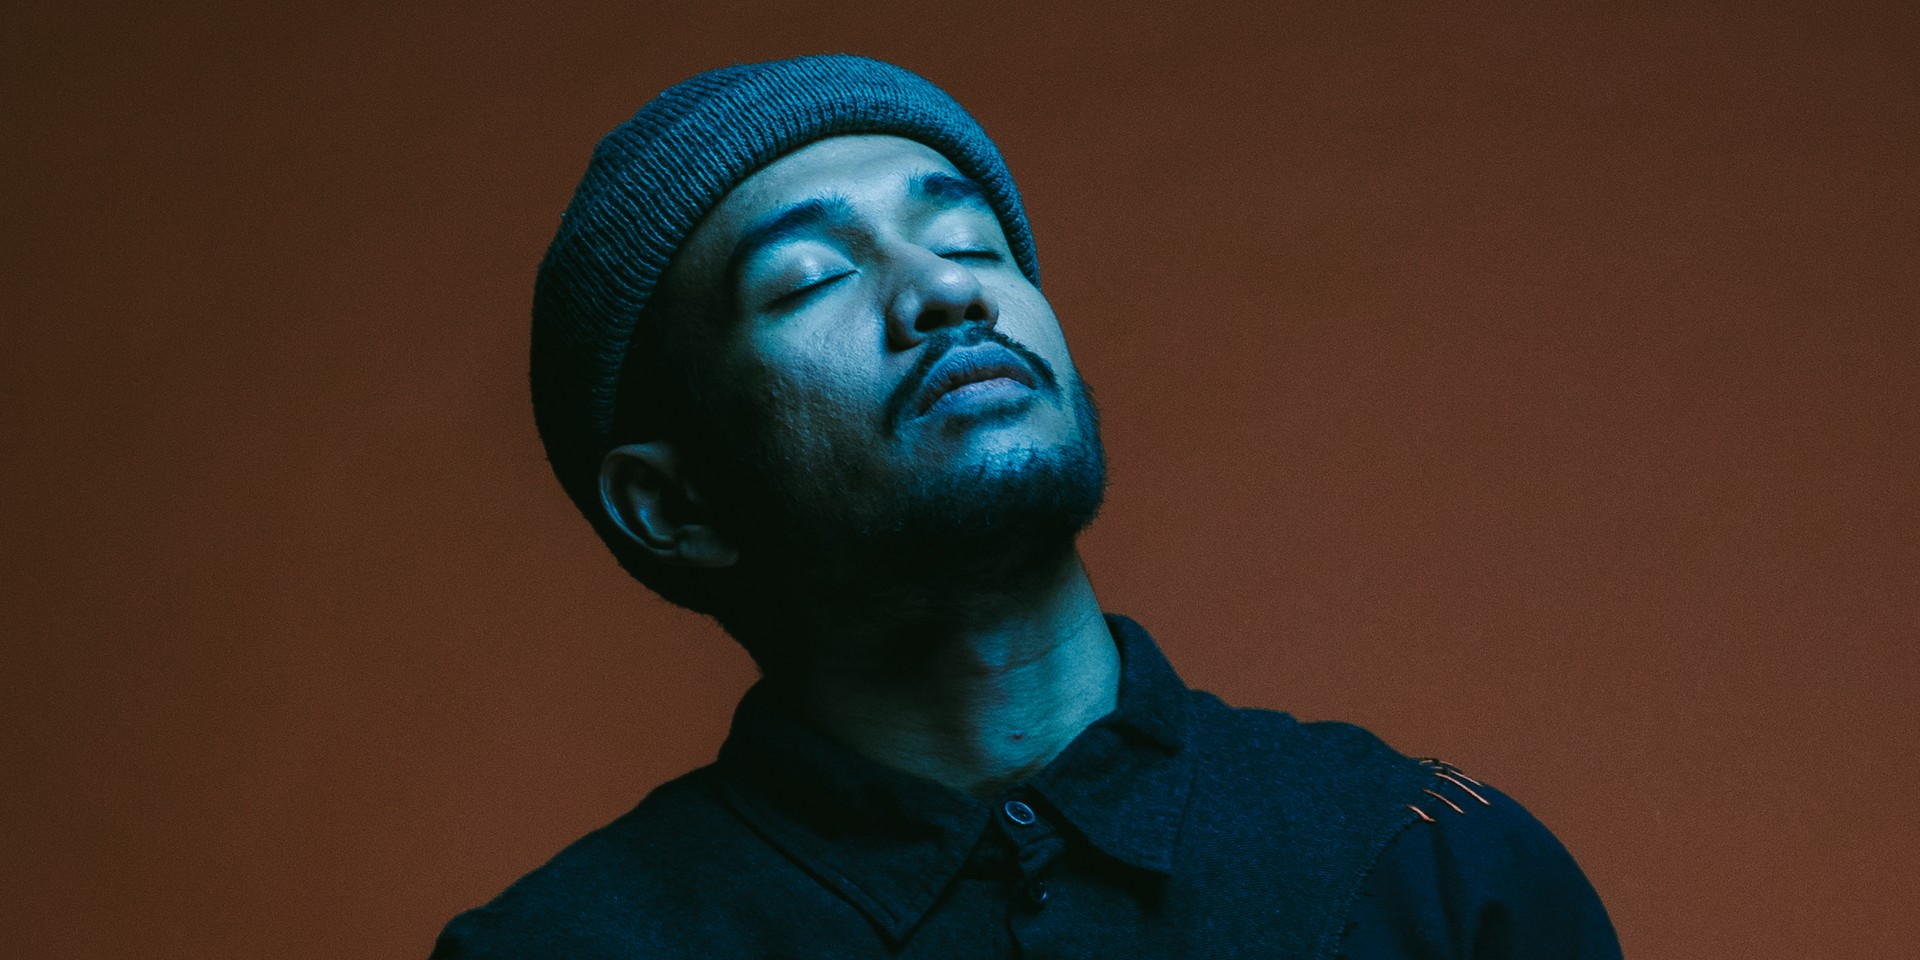 Introducing: Indonesia's Teddy Adhitya on answering the question marks of life through his soulful tunes